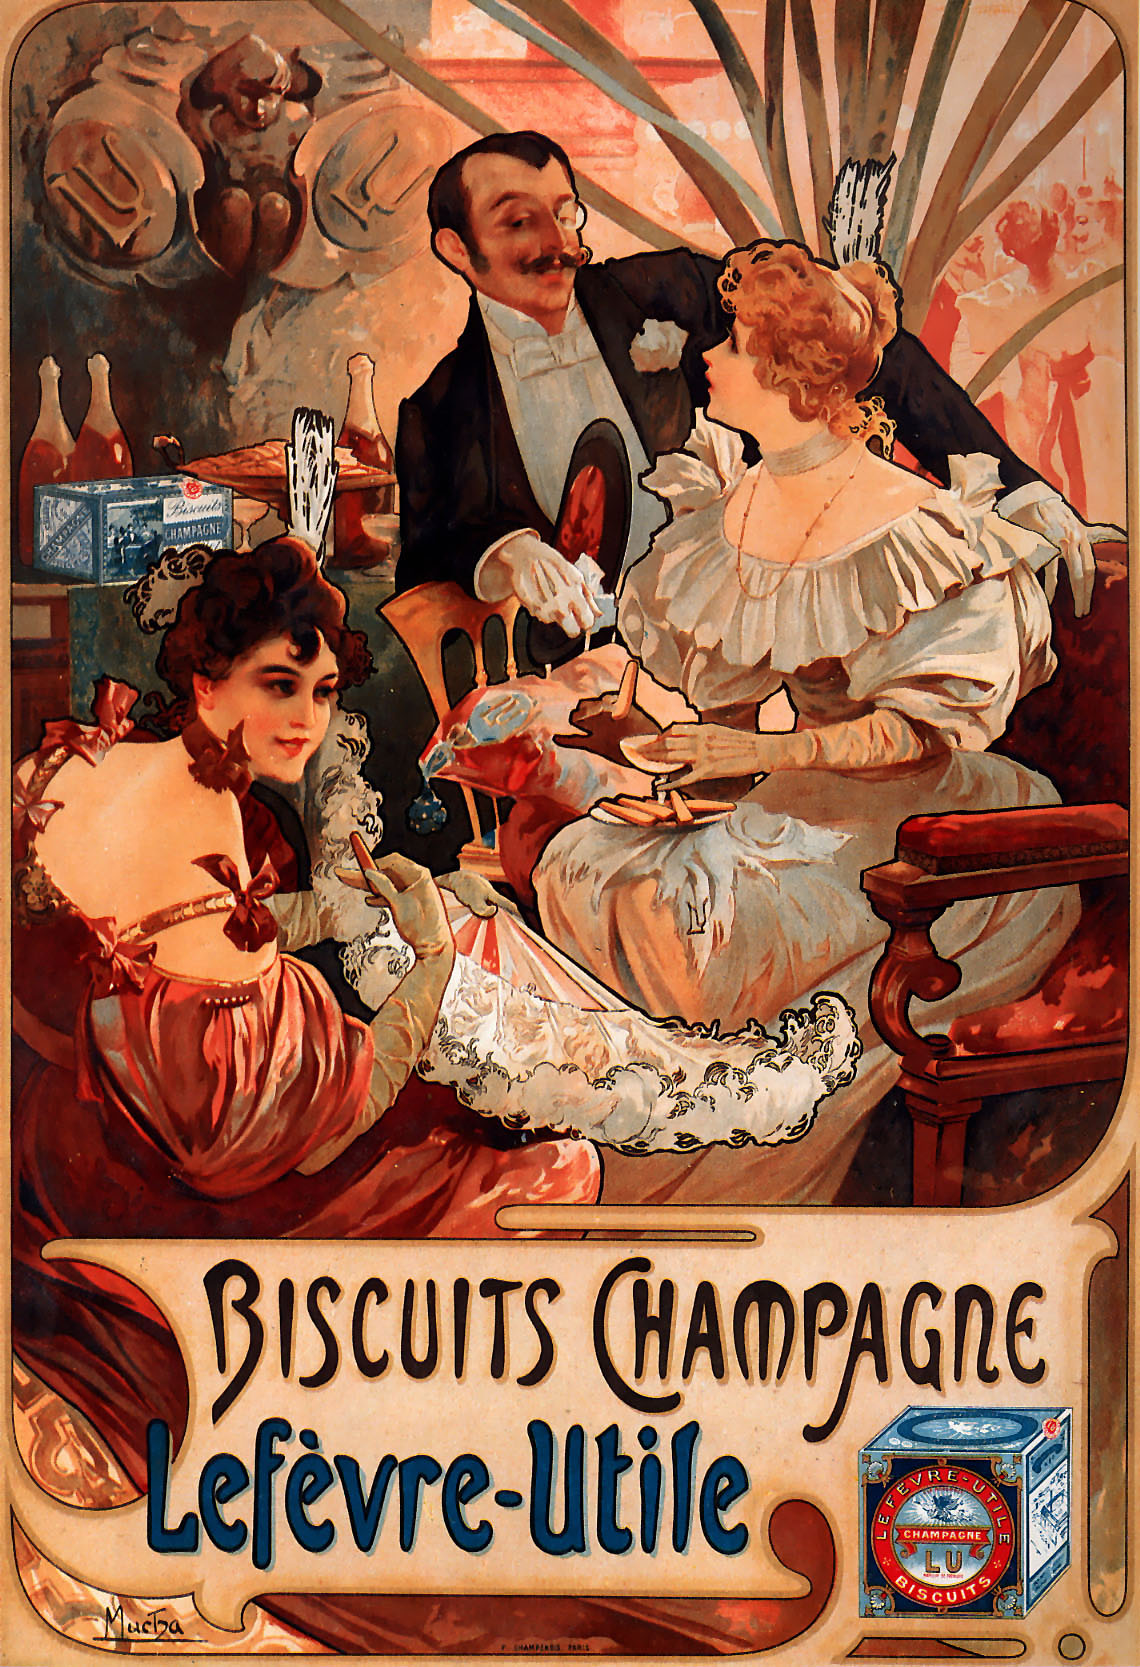 Mucha, Biscuits Champagne Lefèvre-Utile, 1986